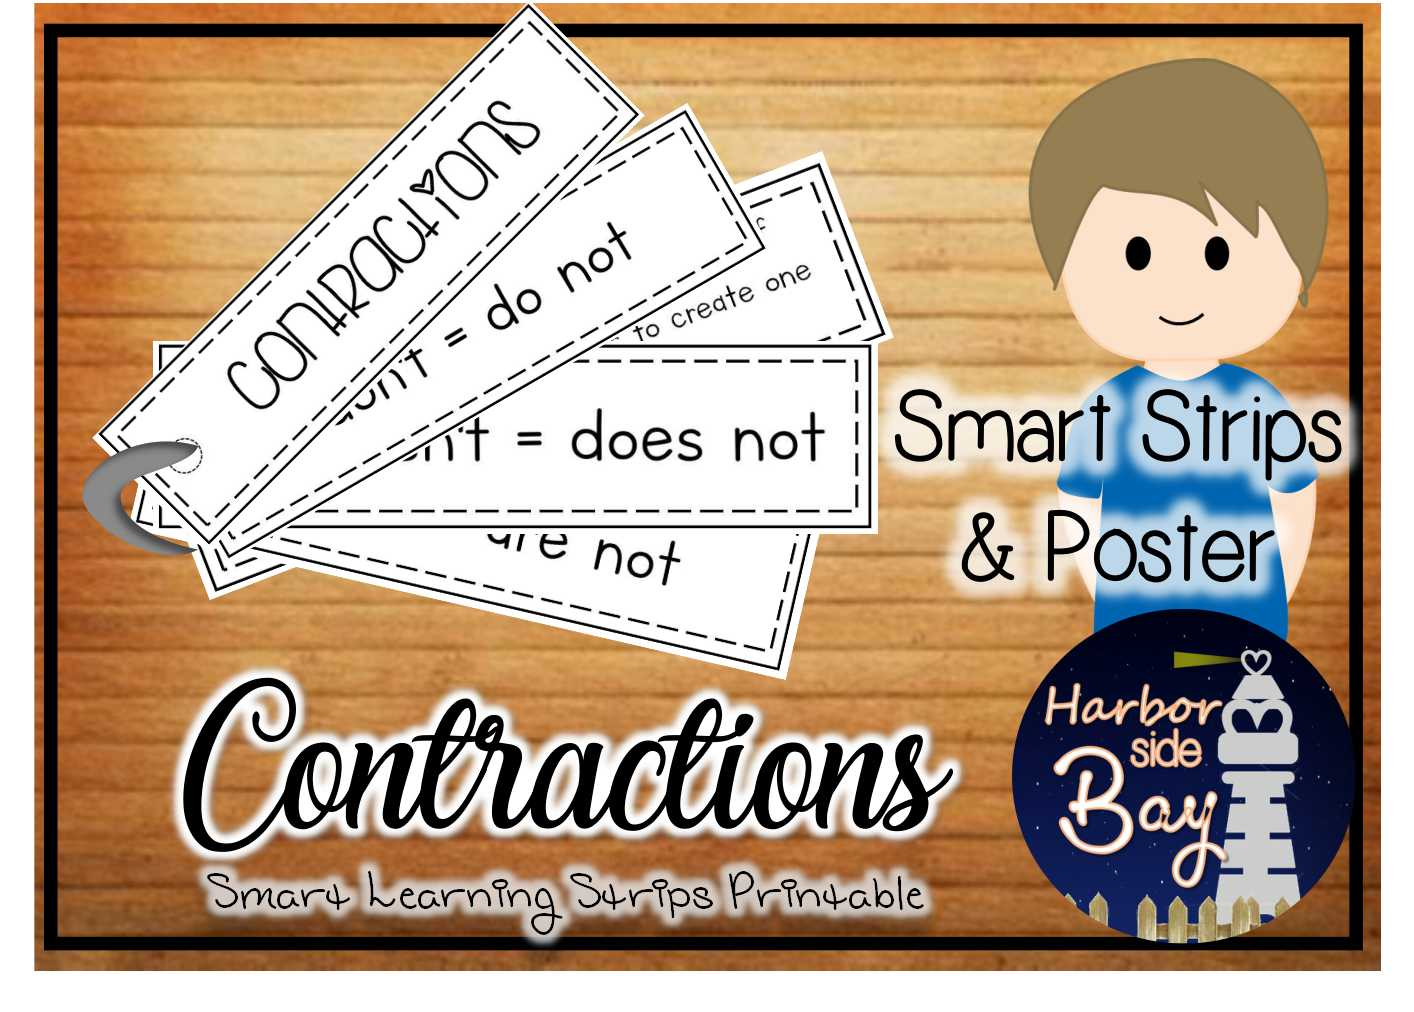 hight resolution of Common Contractions - Made By Teachers